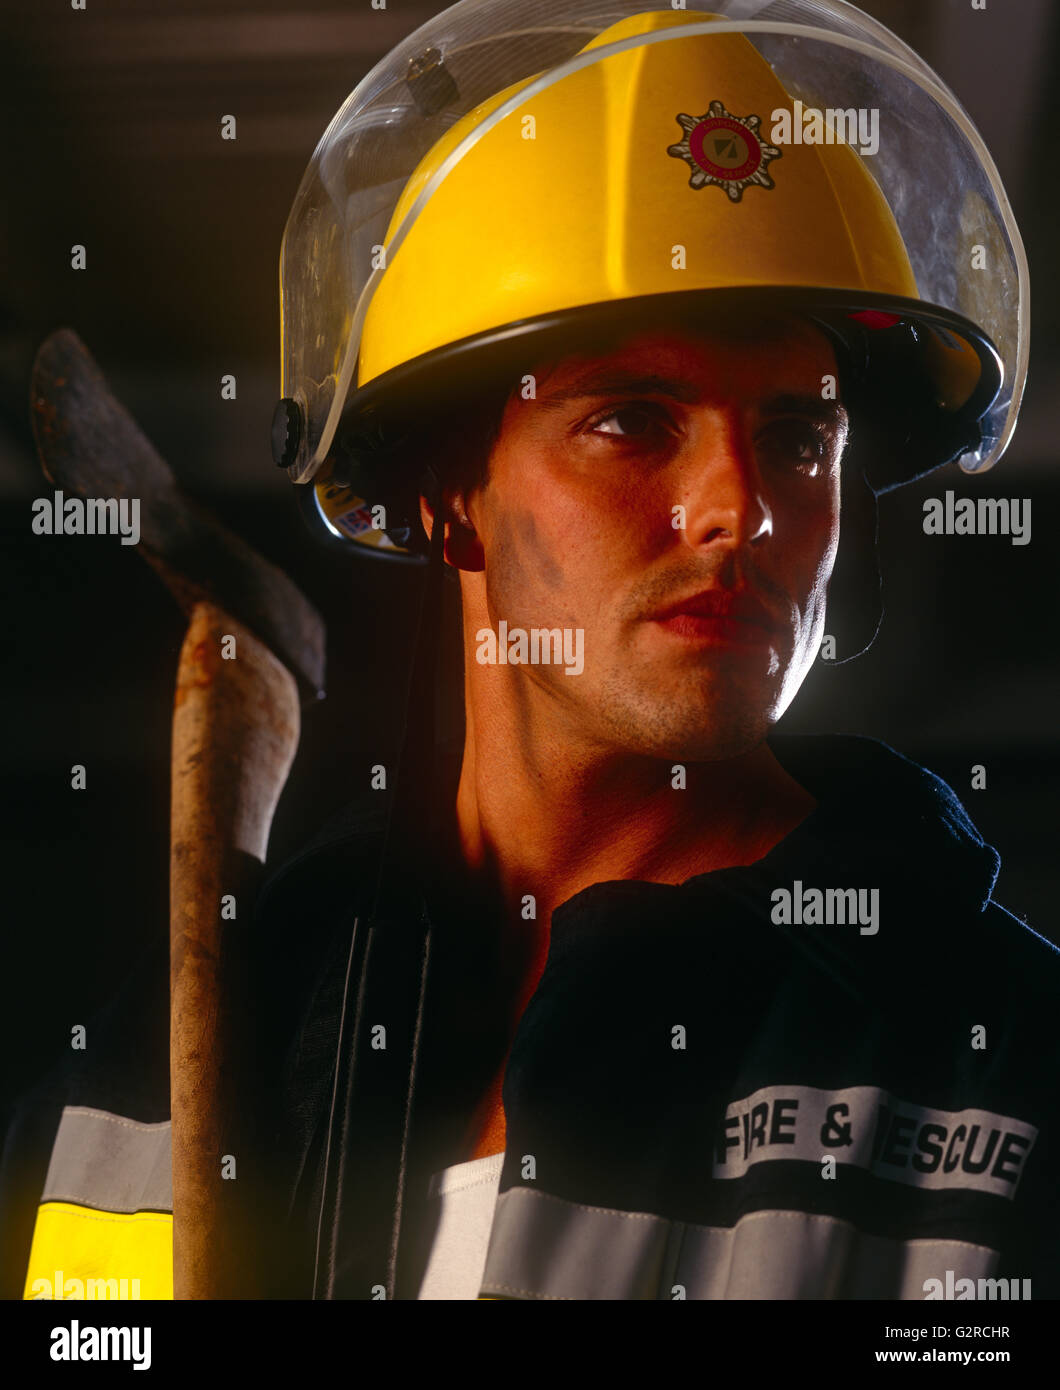 Man in a firefighter outfit, indoors. - Stock Image